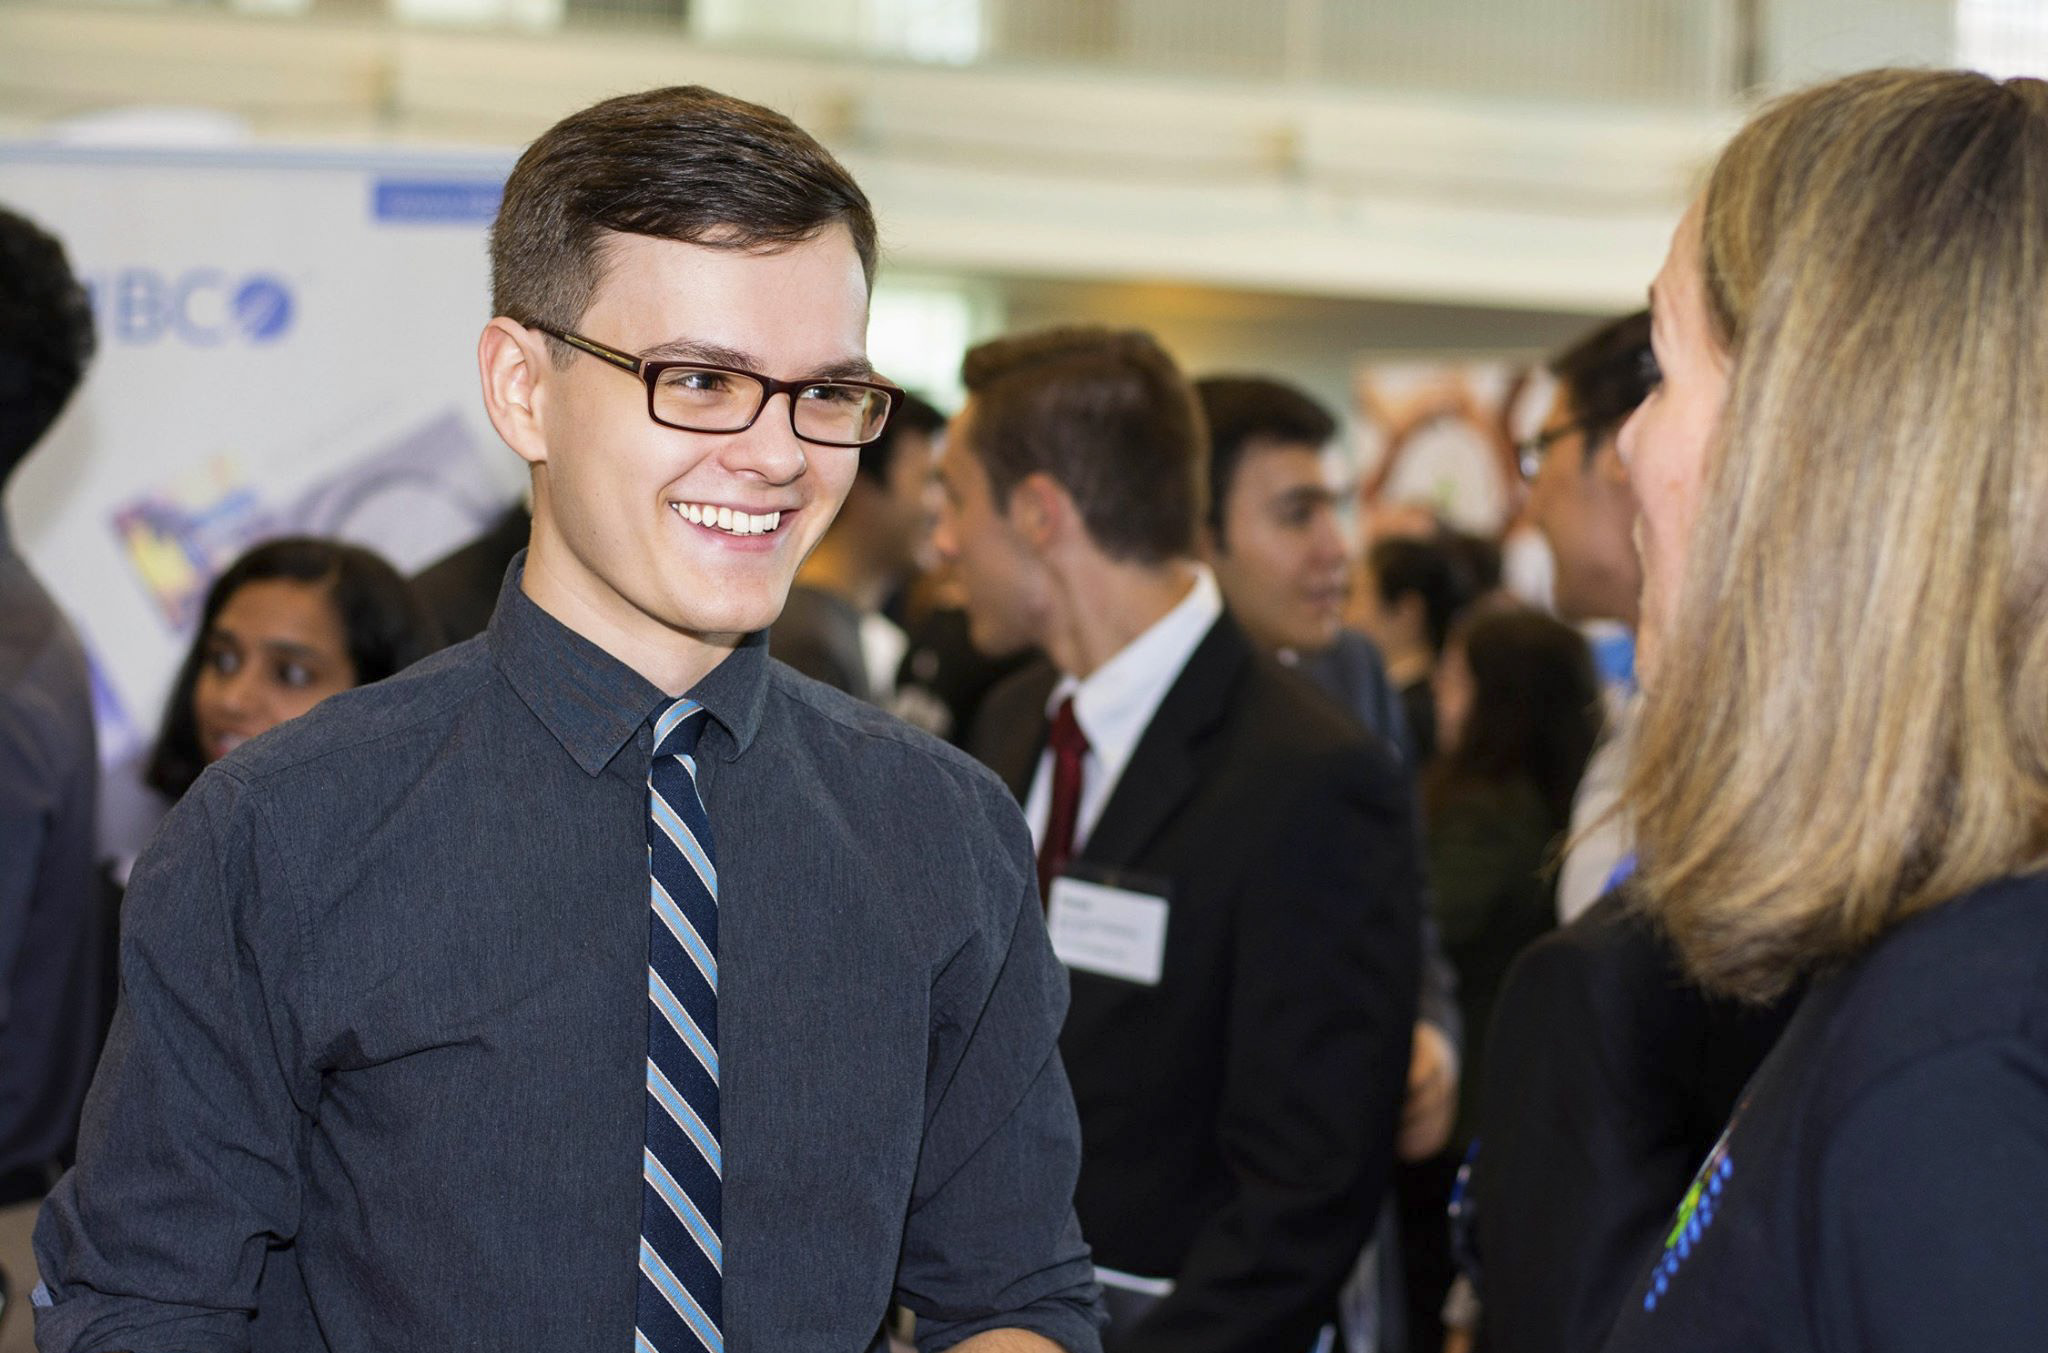 Student at WPI Career Fair